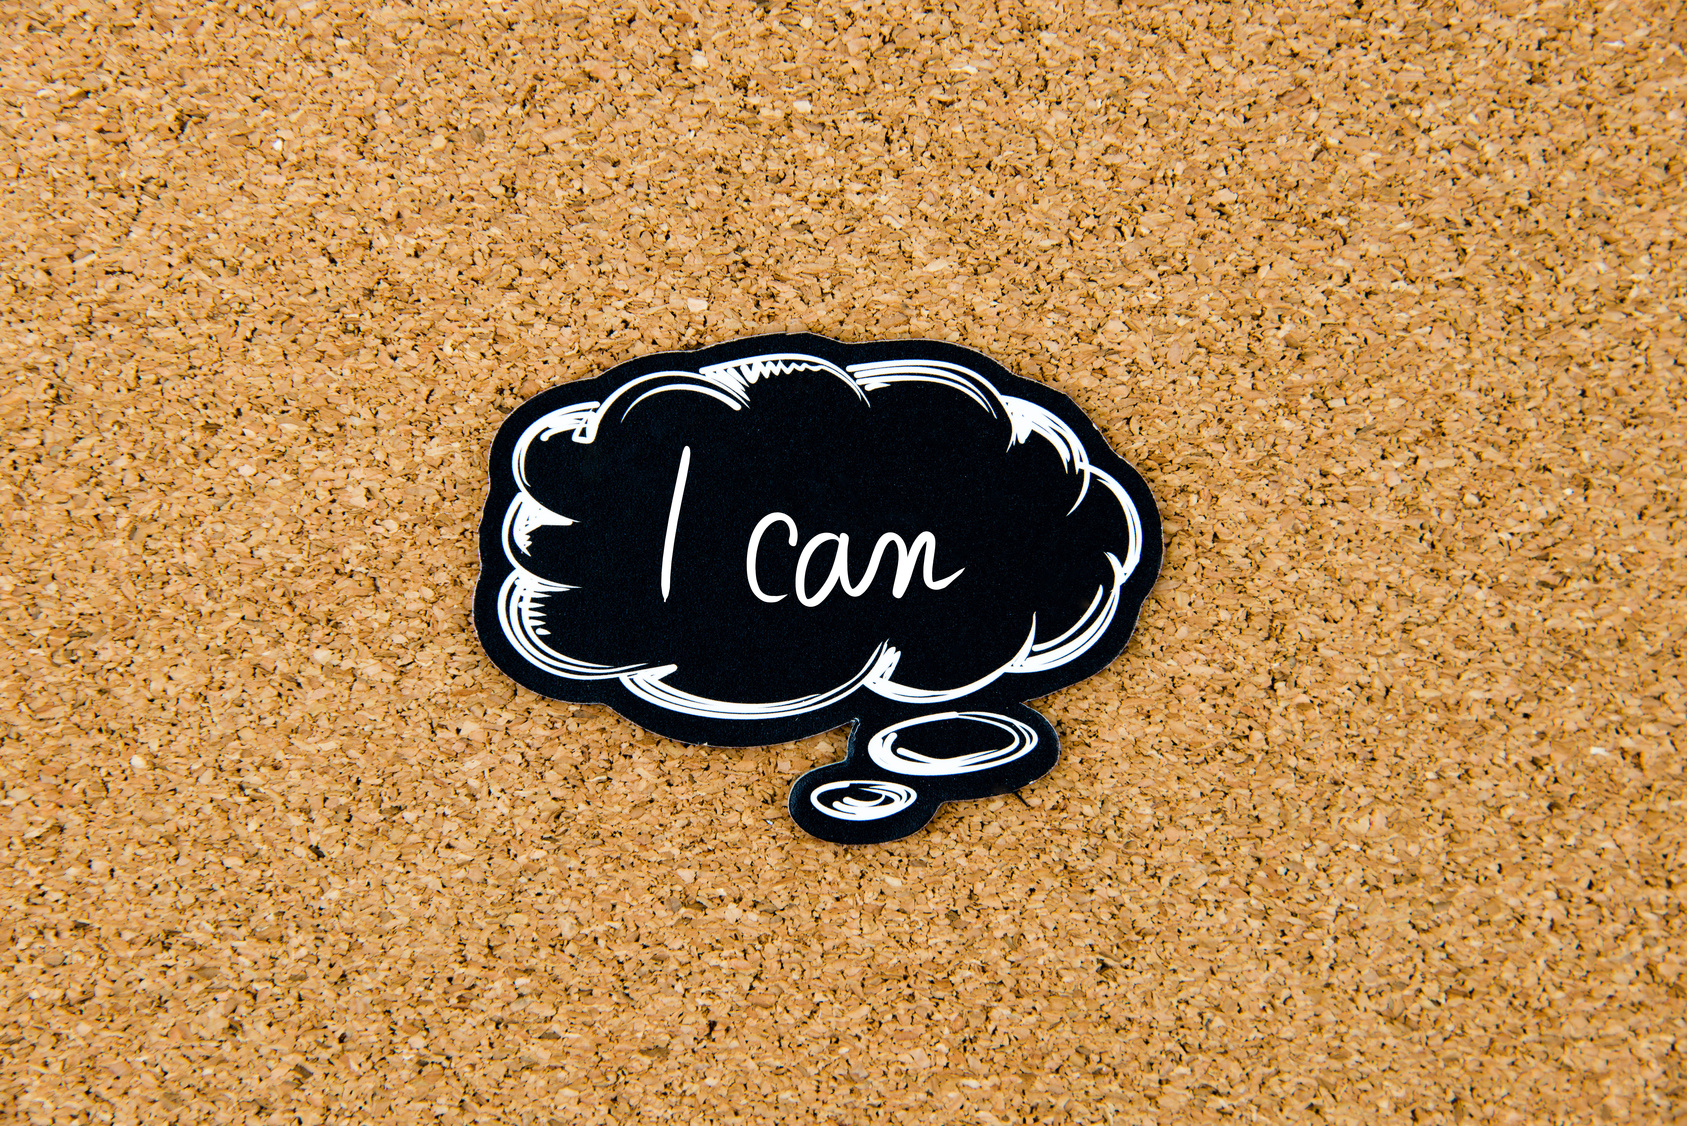 I CAN written on black thinking bubble over cork board background, copy space available